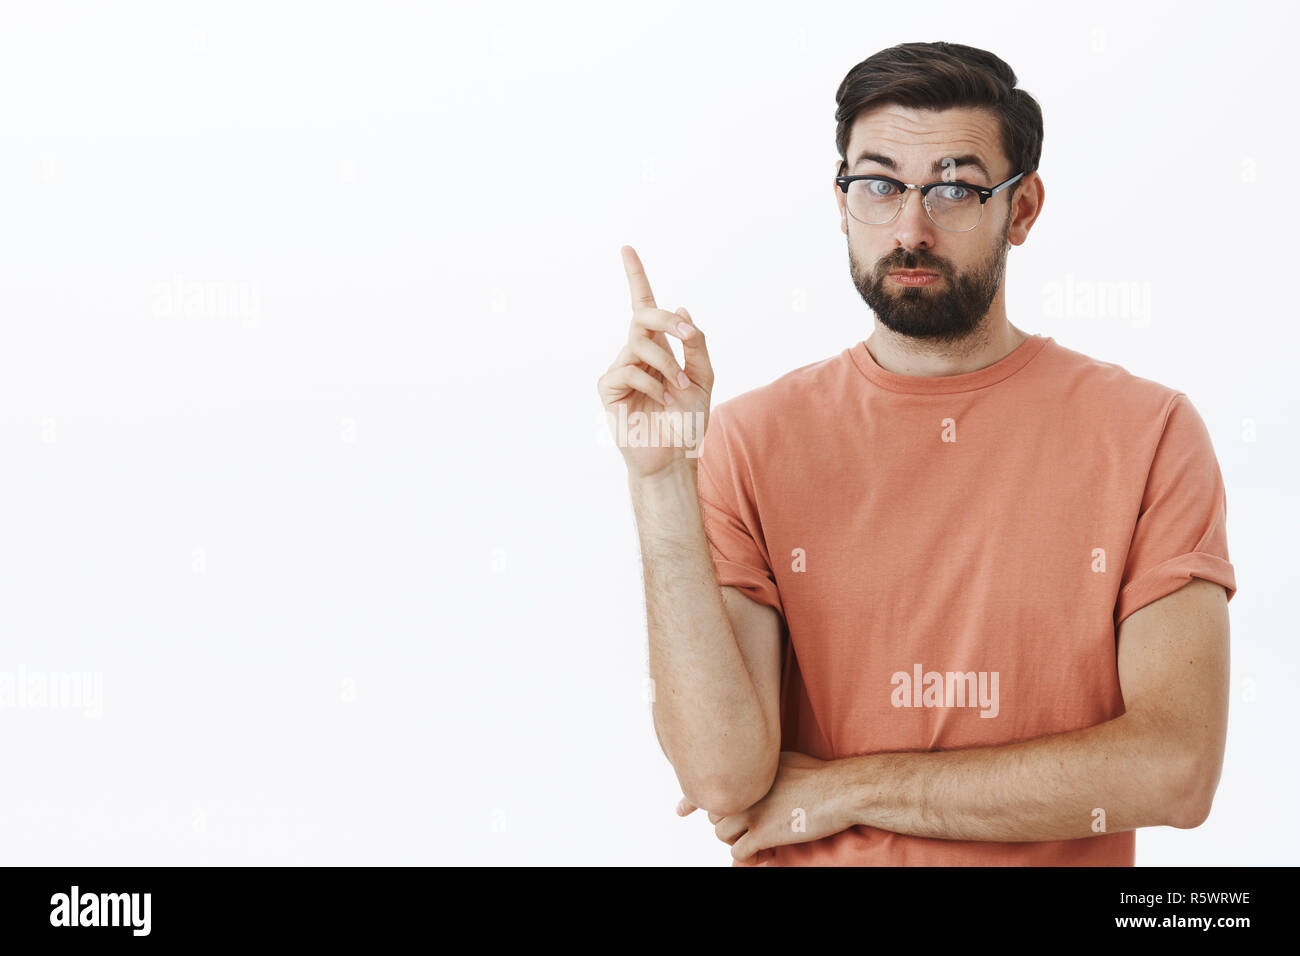 Cute teacher with beard in glasses raising index finger to make point, teach something and say smart things, standing wise and intelligent over gray b - Stock Image